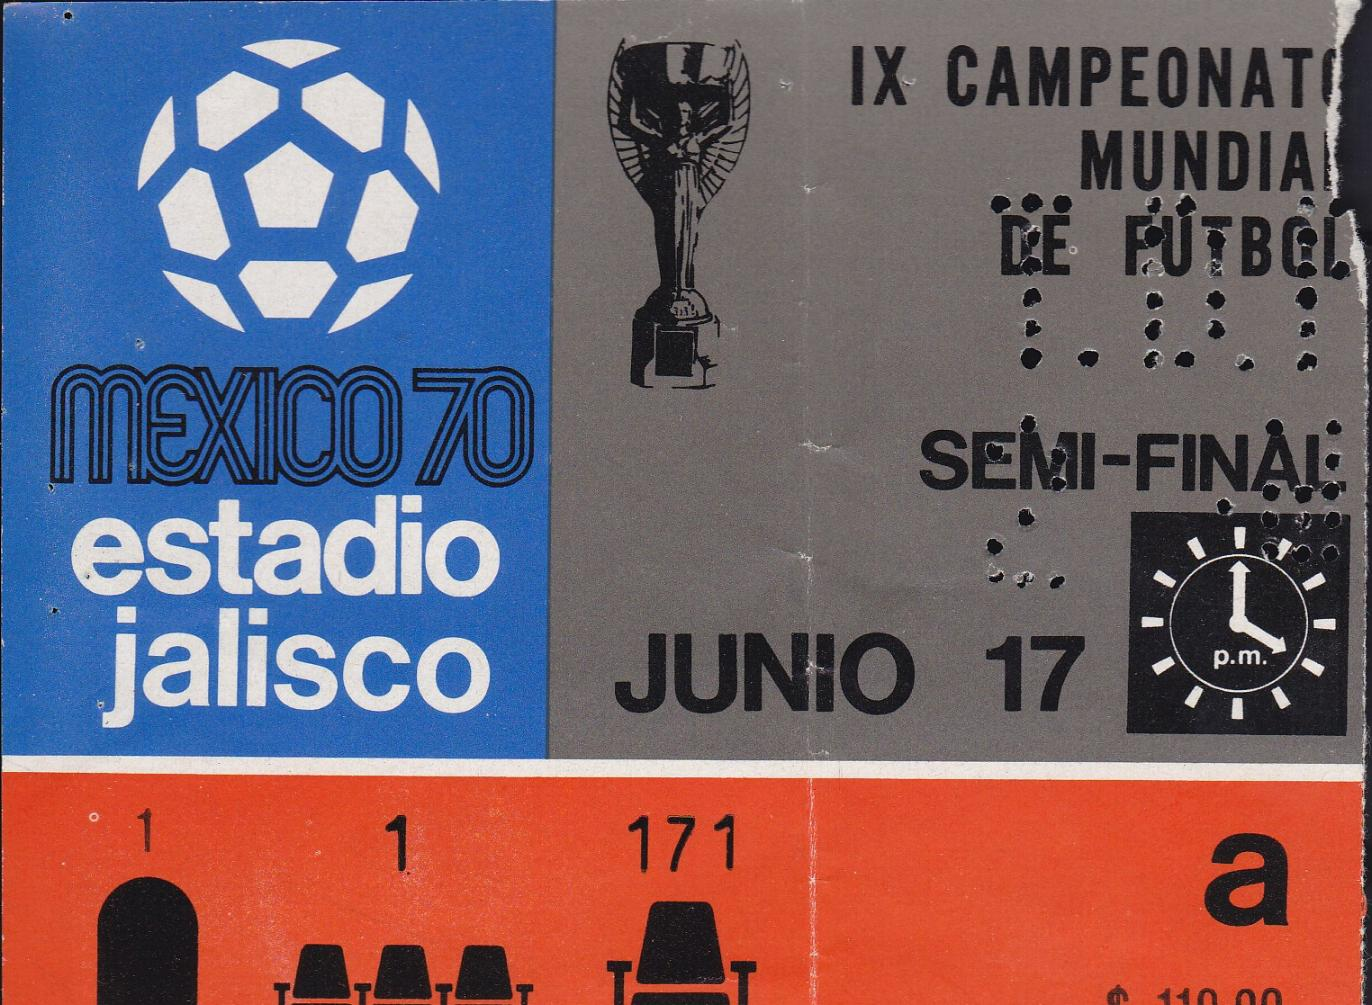 1970 WORLD CUP SEMI-FINAL TICKET - BRAZIL v URUGUAY